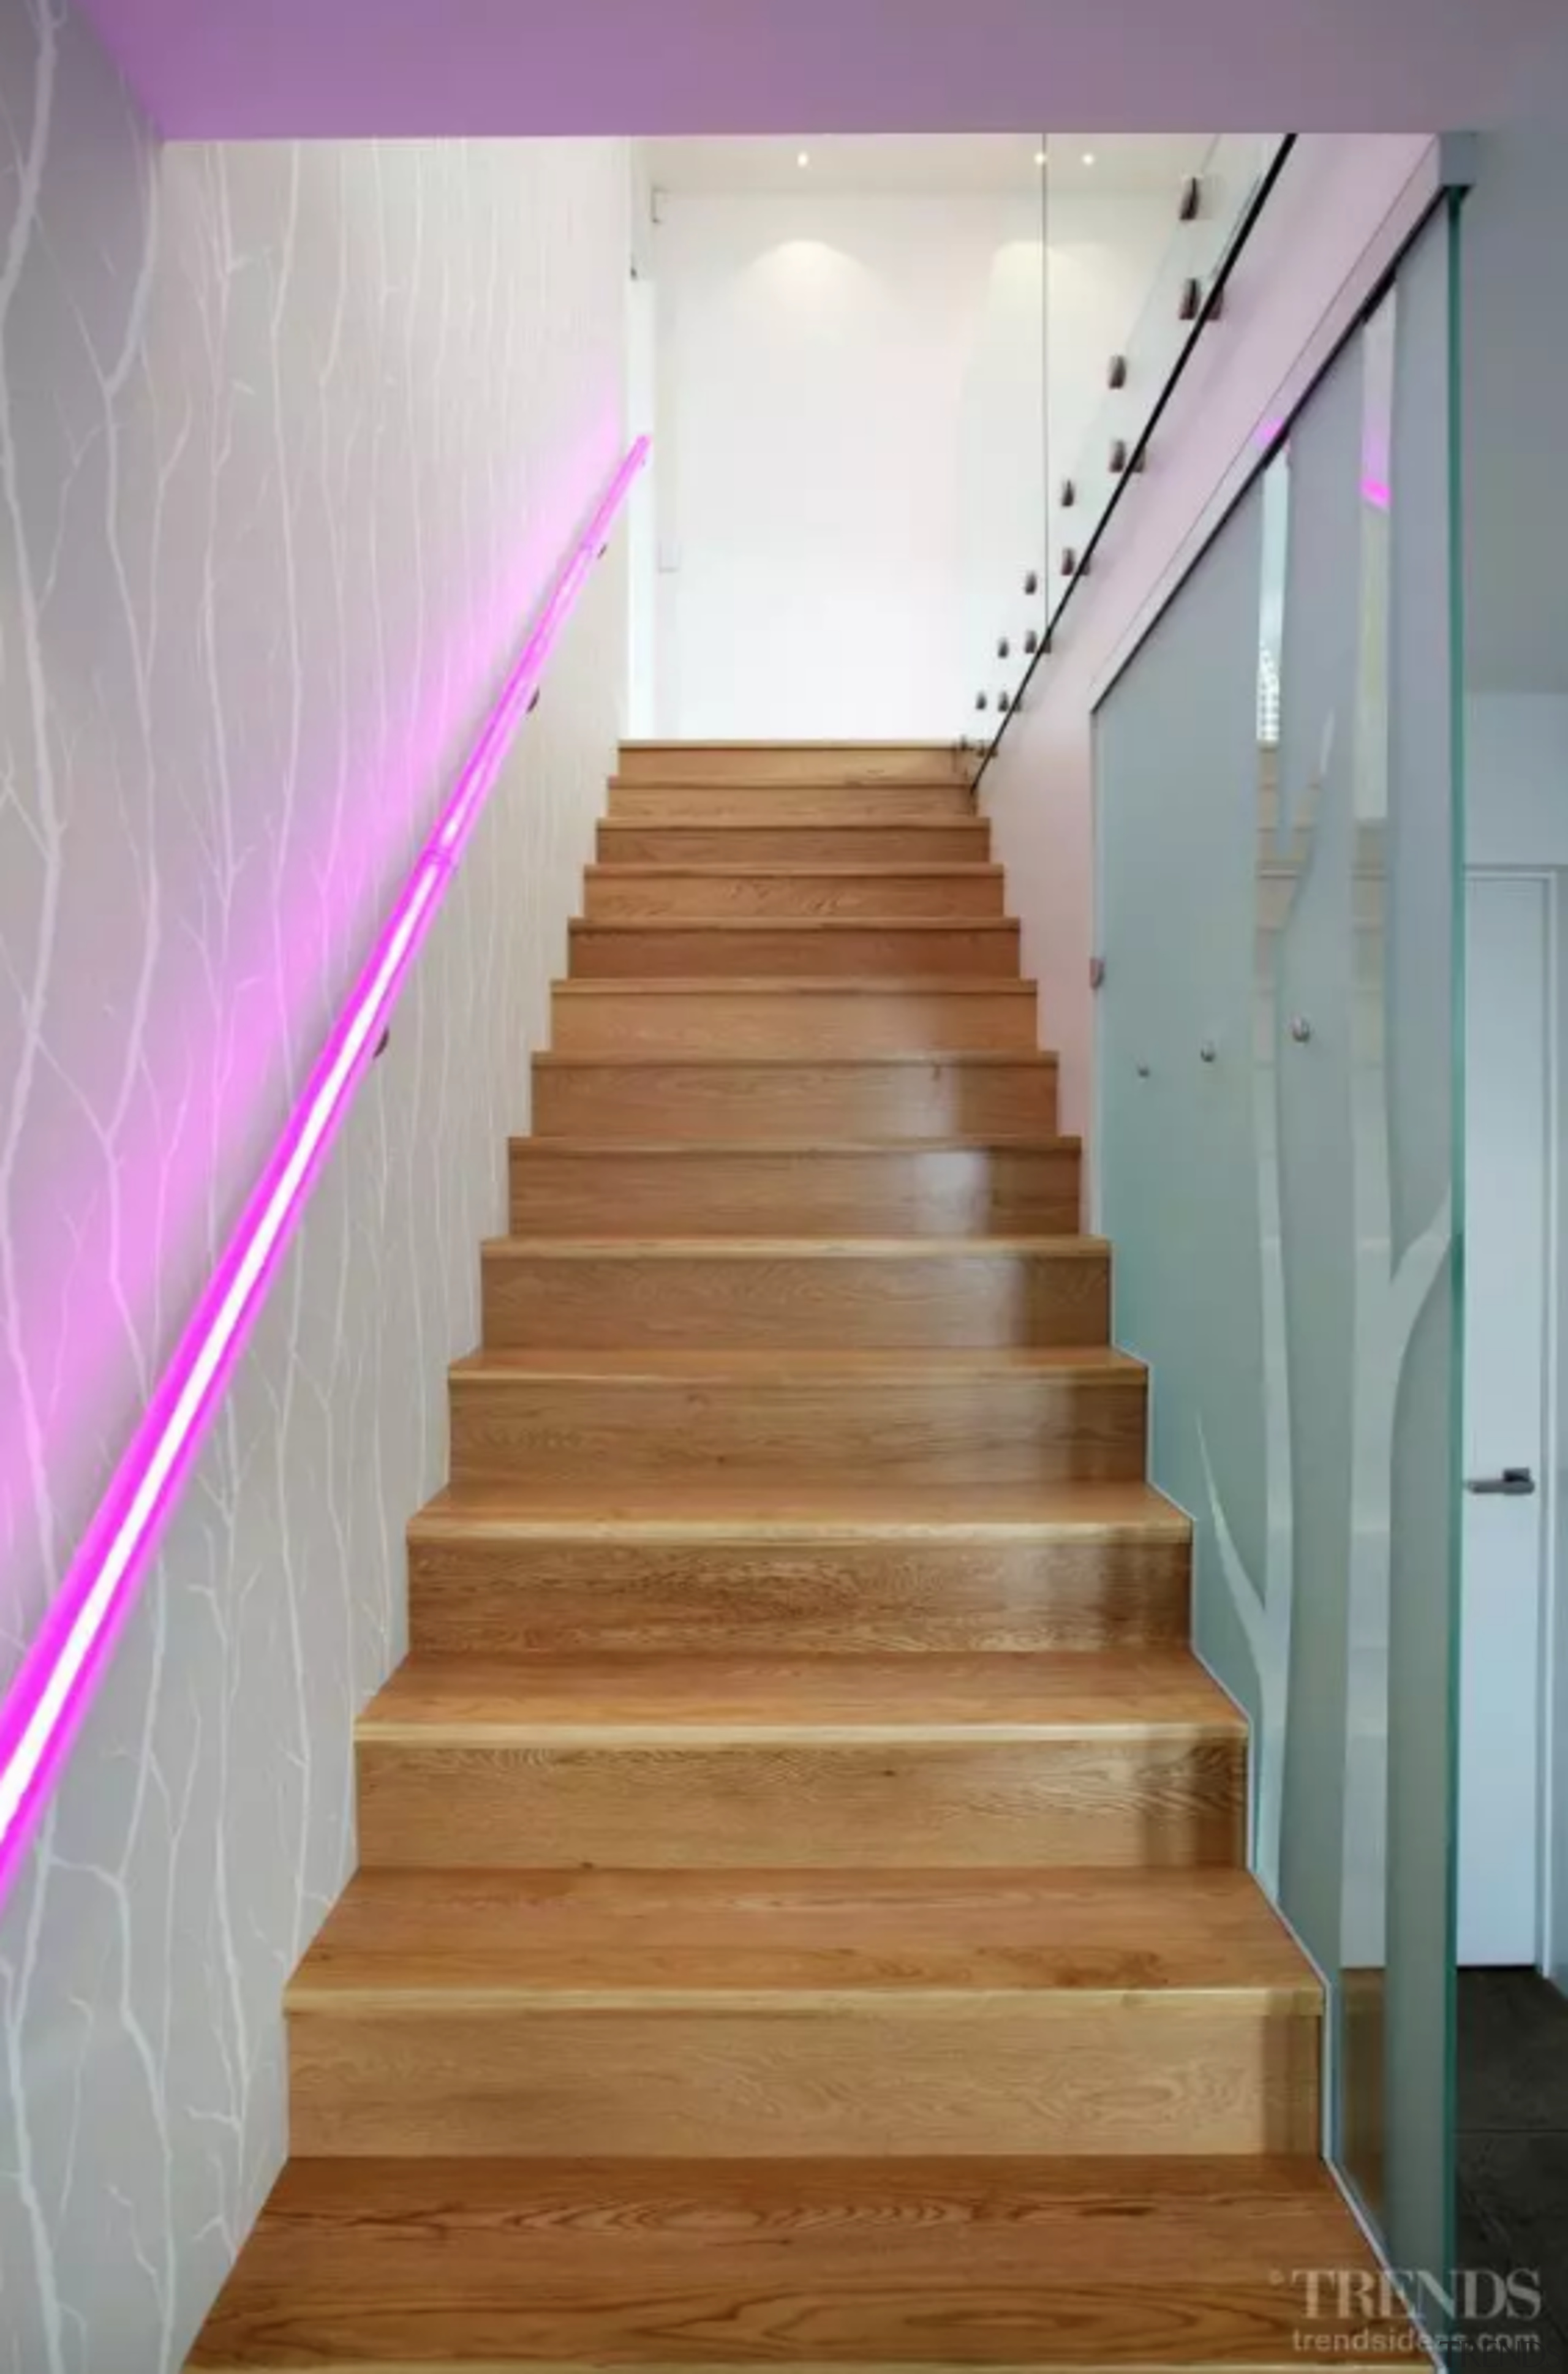 Etched glass and colour-changing LED lights decorate the architecture, baluster, building, ceiling, floor, flooring, handrail, hardwood, home, house, interior design, laminate flooring, property, real estate, room, stairs, wood, wood flooring, gray, brown